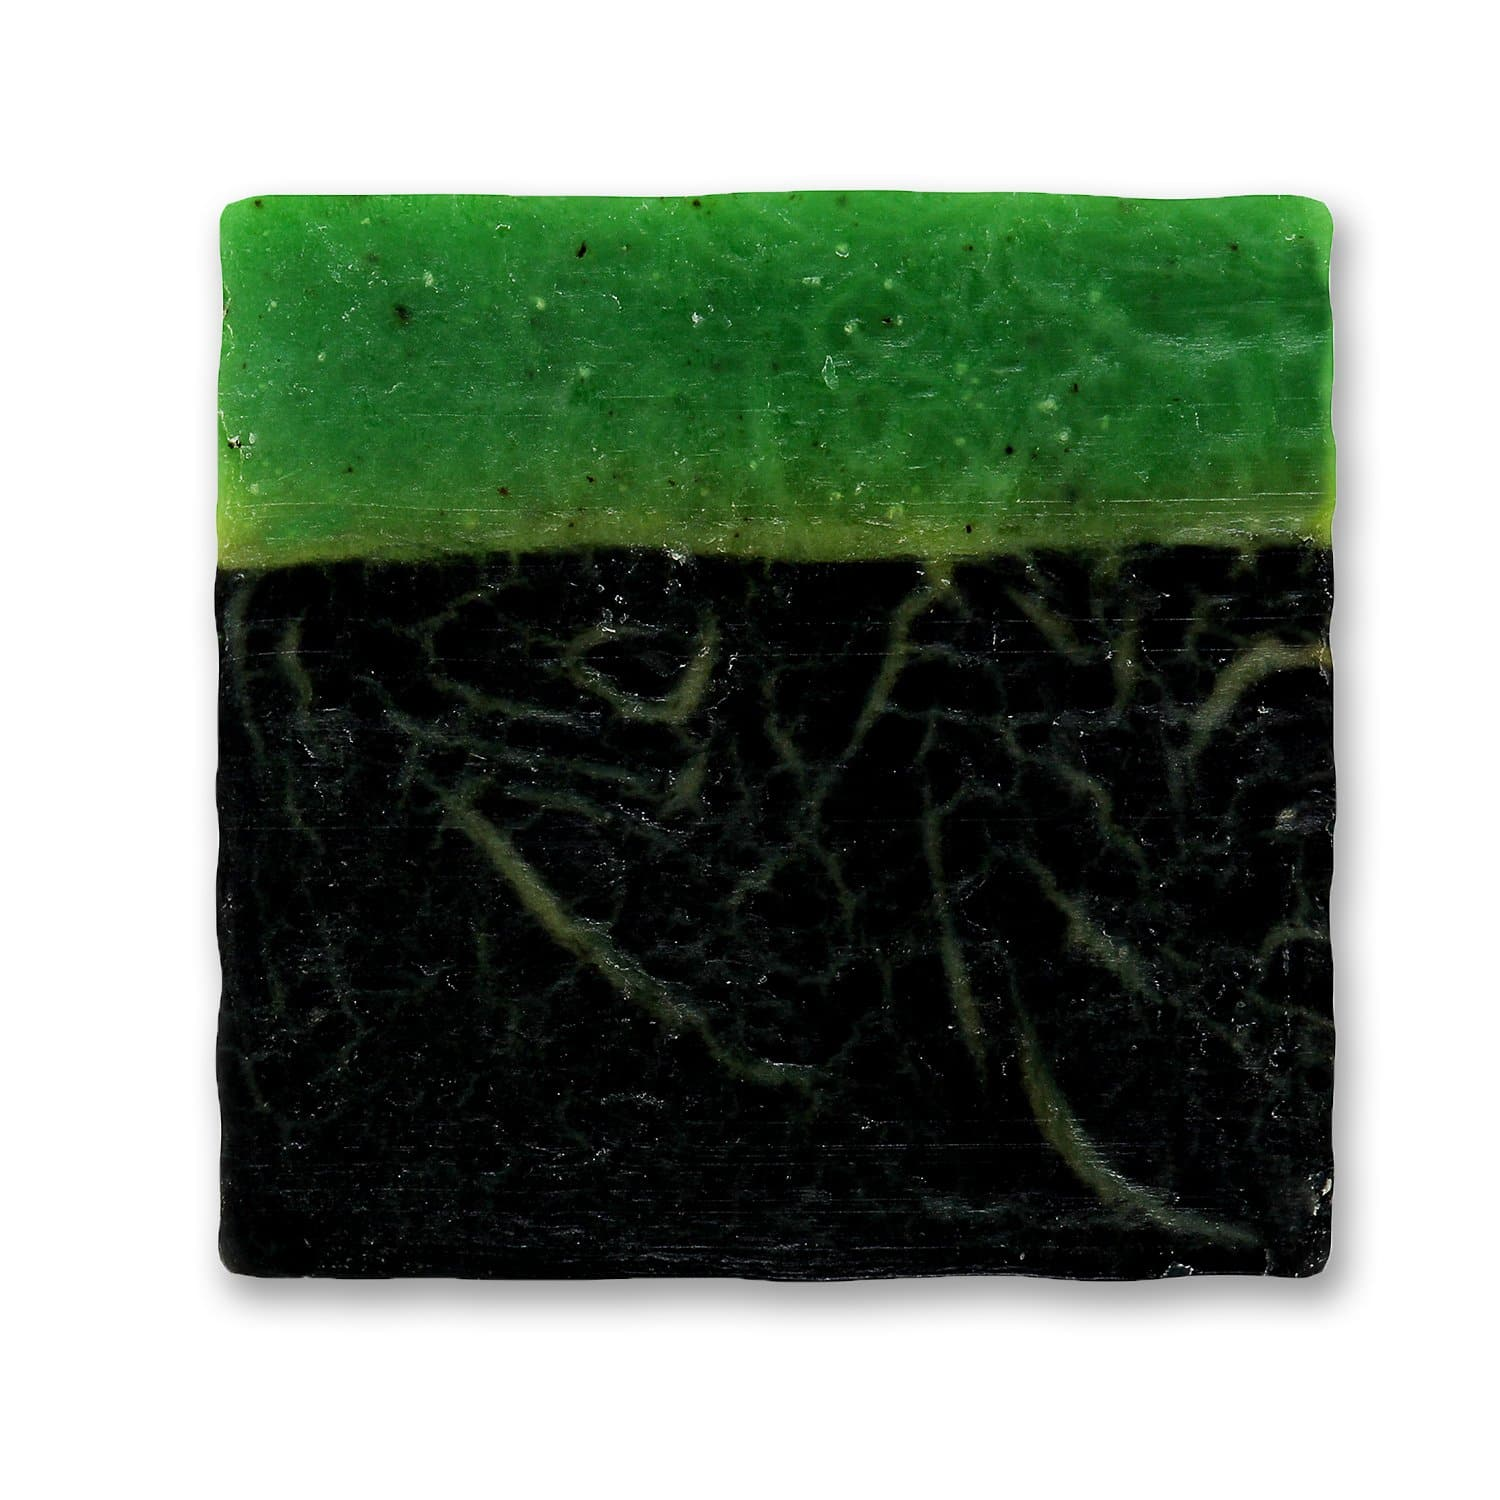 Clear Skin Anti-Acne and Tan-Removal Activated Charcoal and Green Tea Handcrafted Soap, 100g